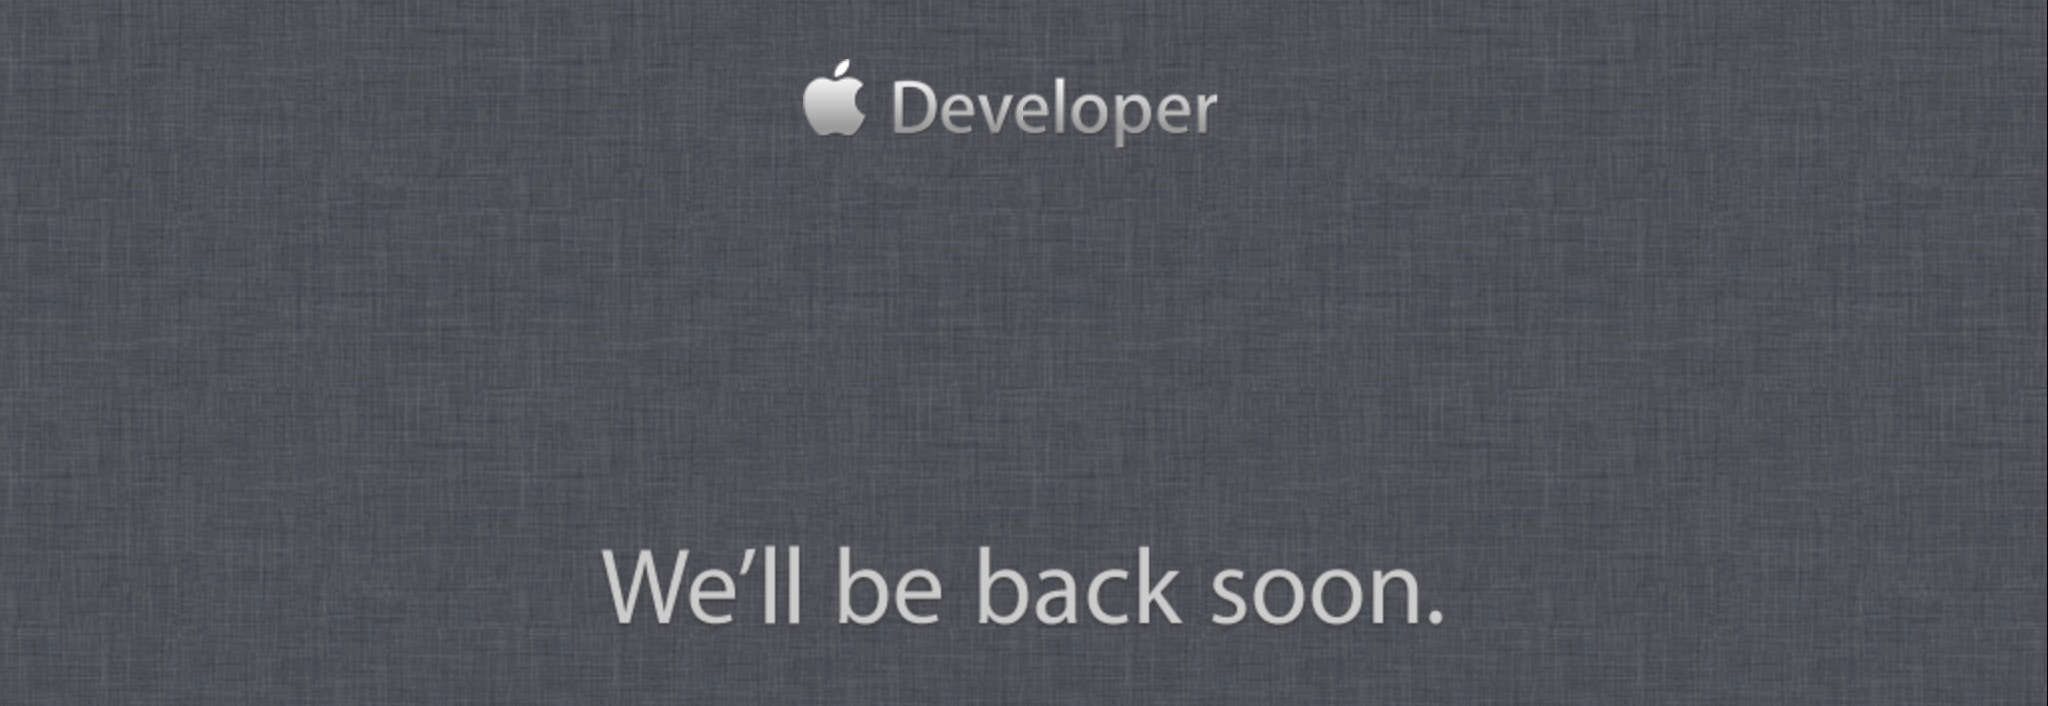 Don't Panic: Apple's Developer Services To Briefly Go Offline Today